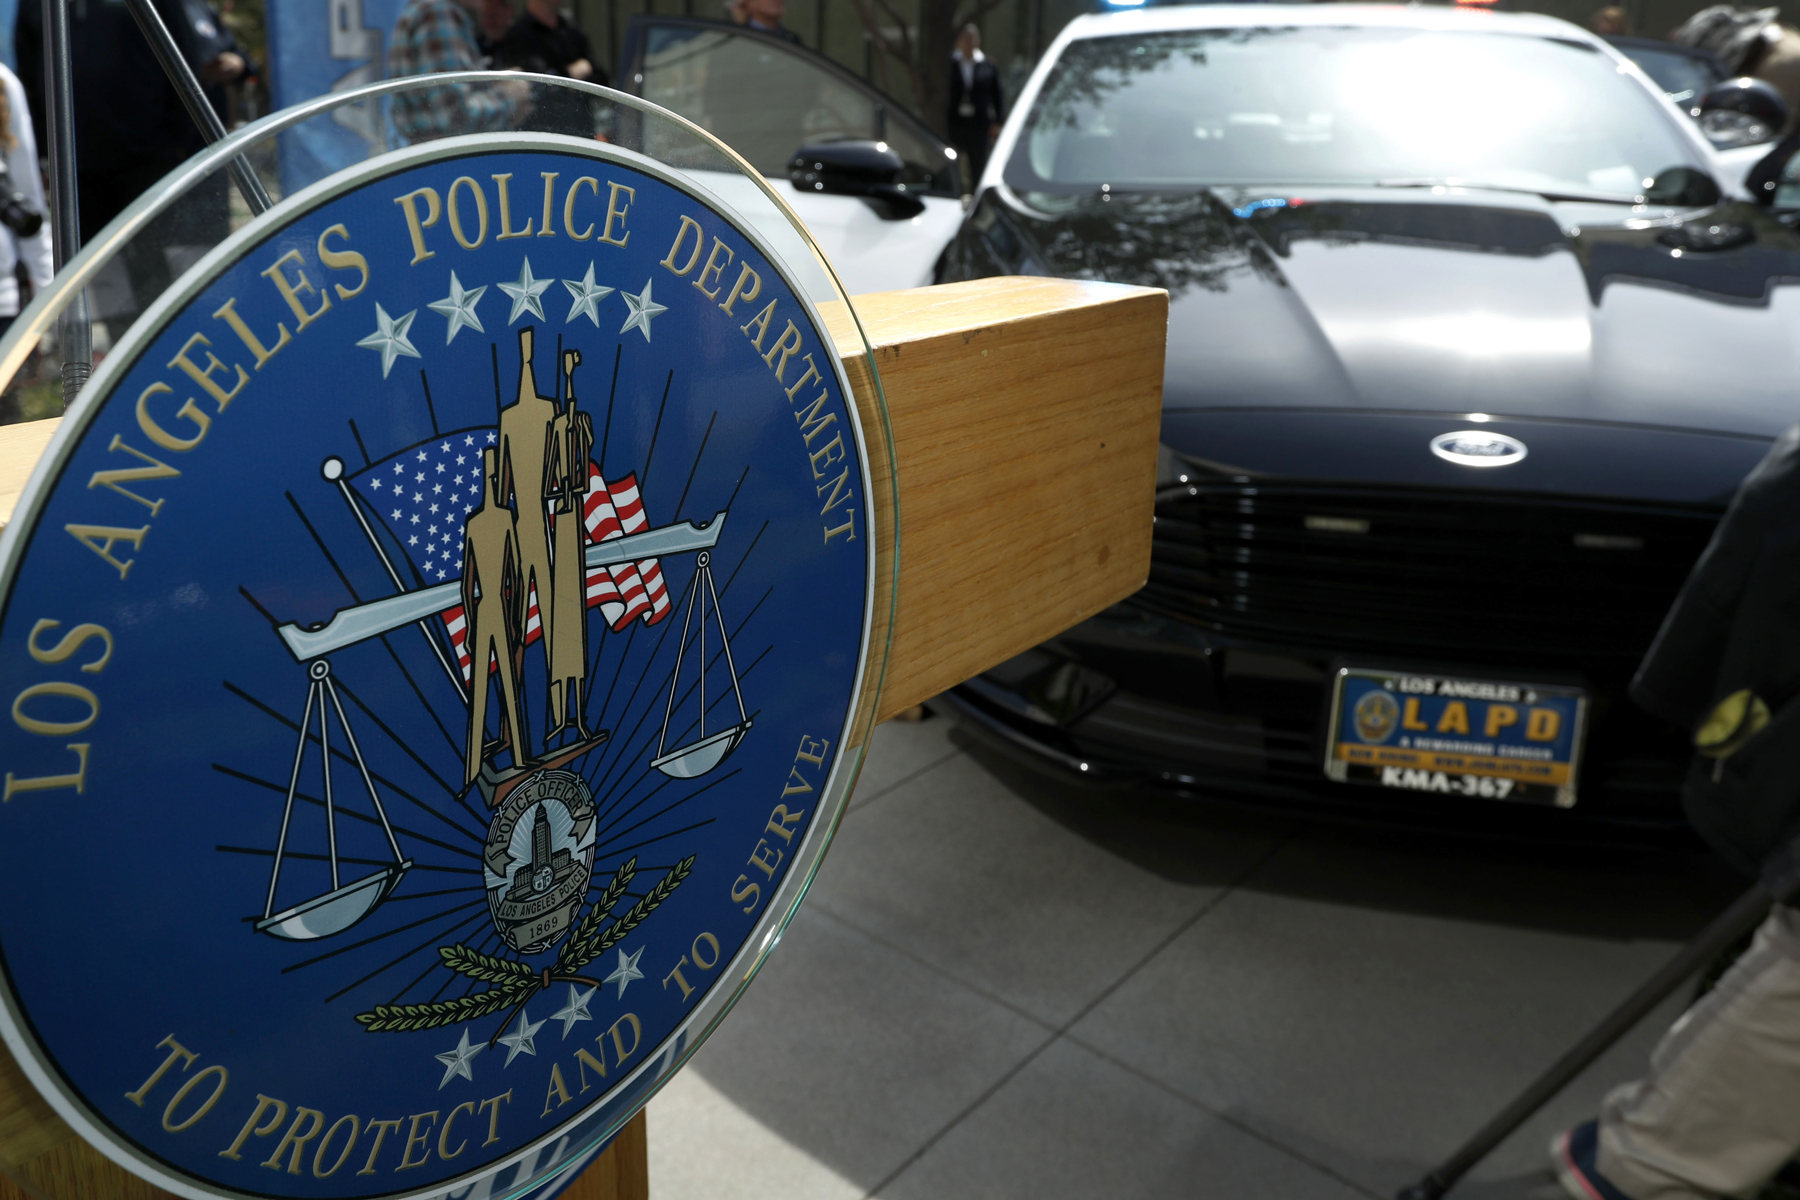 L.A. Police Ordered to Unseal Details of Shootings, Misconduct